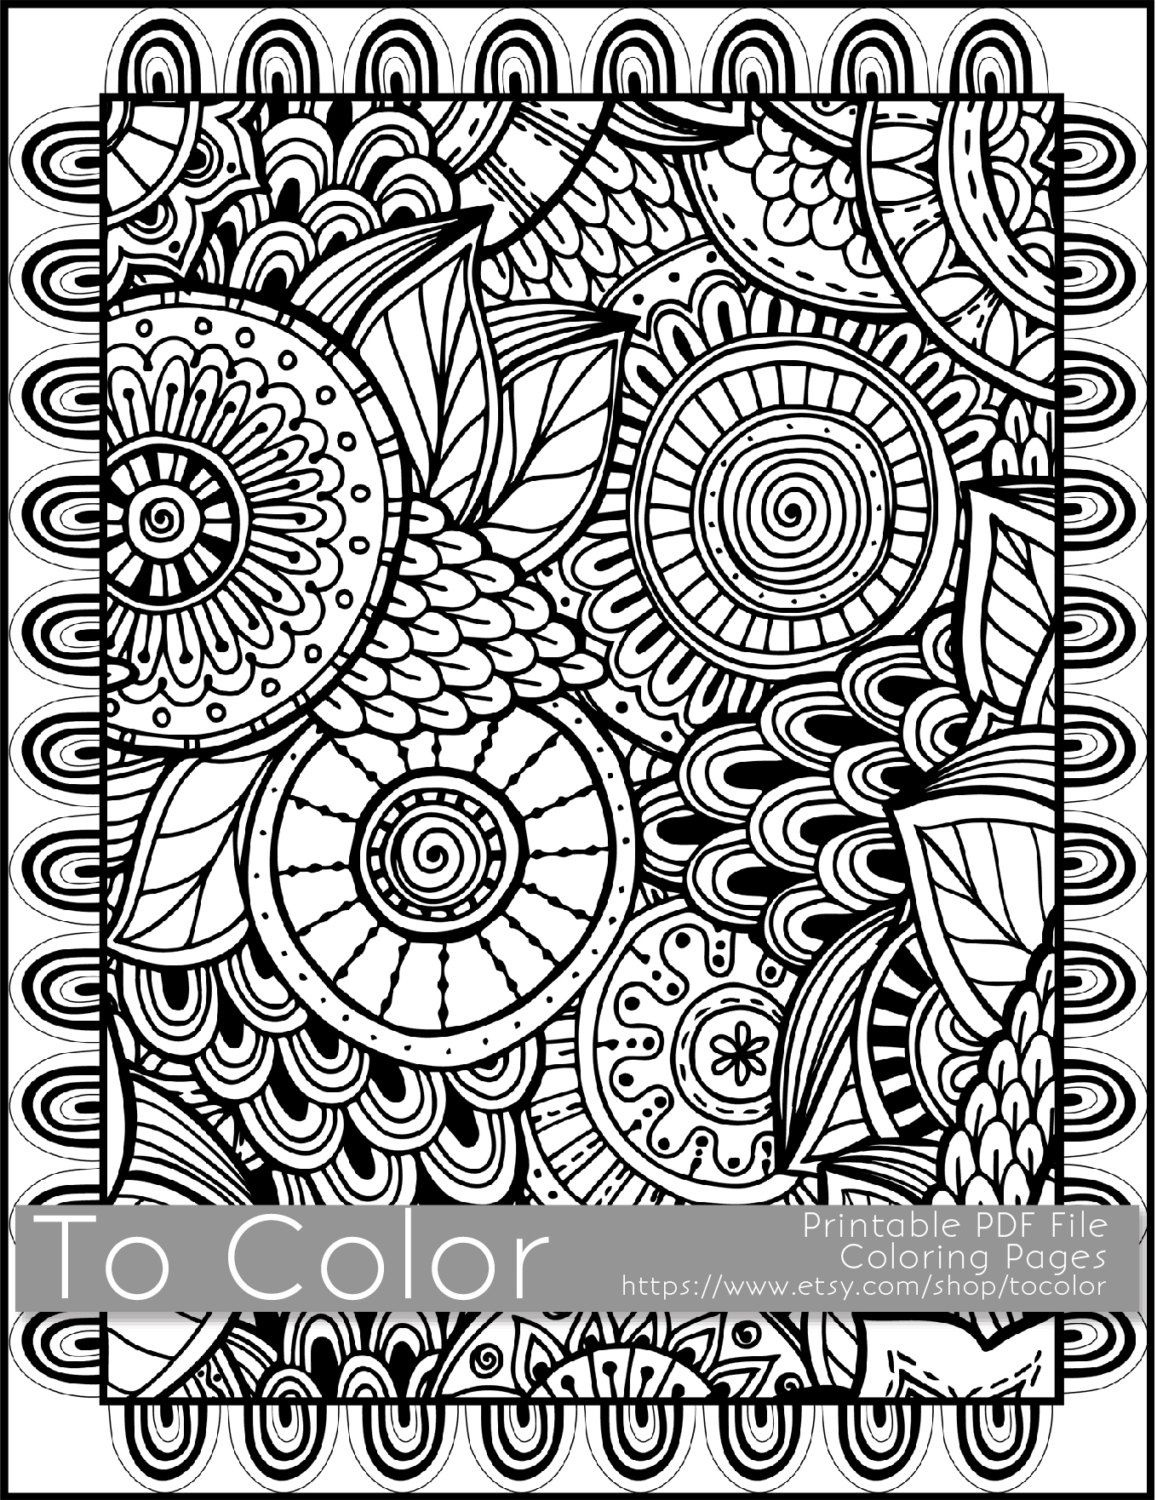 Pinkate Pullen On Free Coloring Pages For Coloring Fans | Adult - Free Printable Doodle Patterns